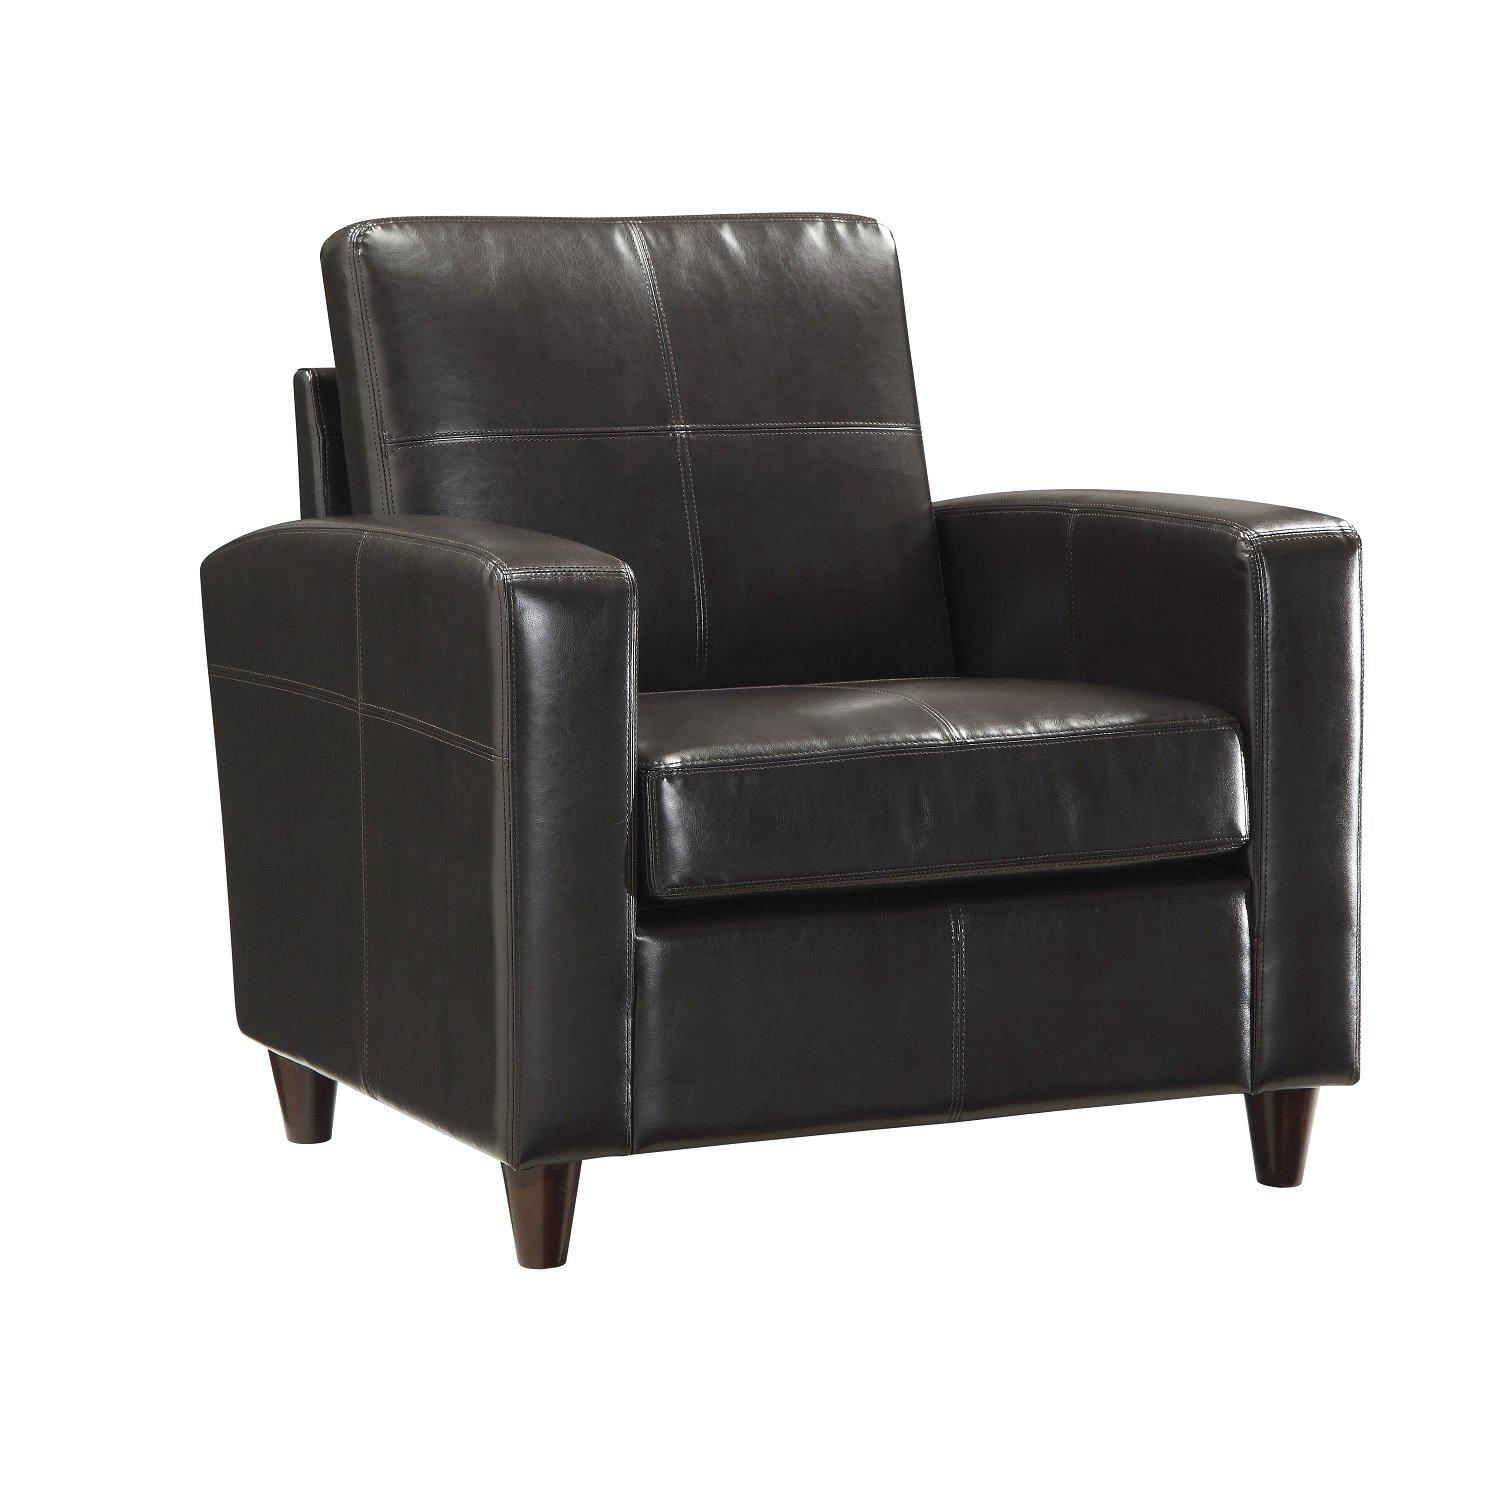 Bonded Leather Club Chair With Espresso Finish Legs